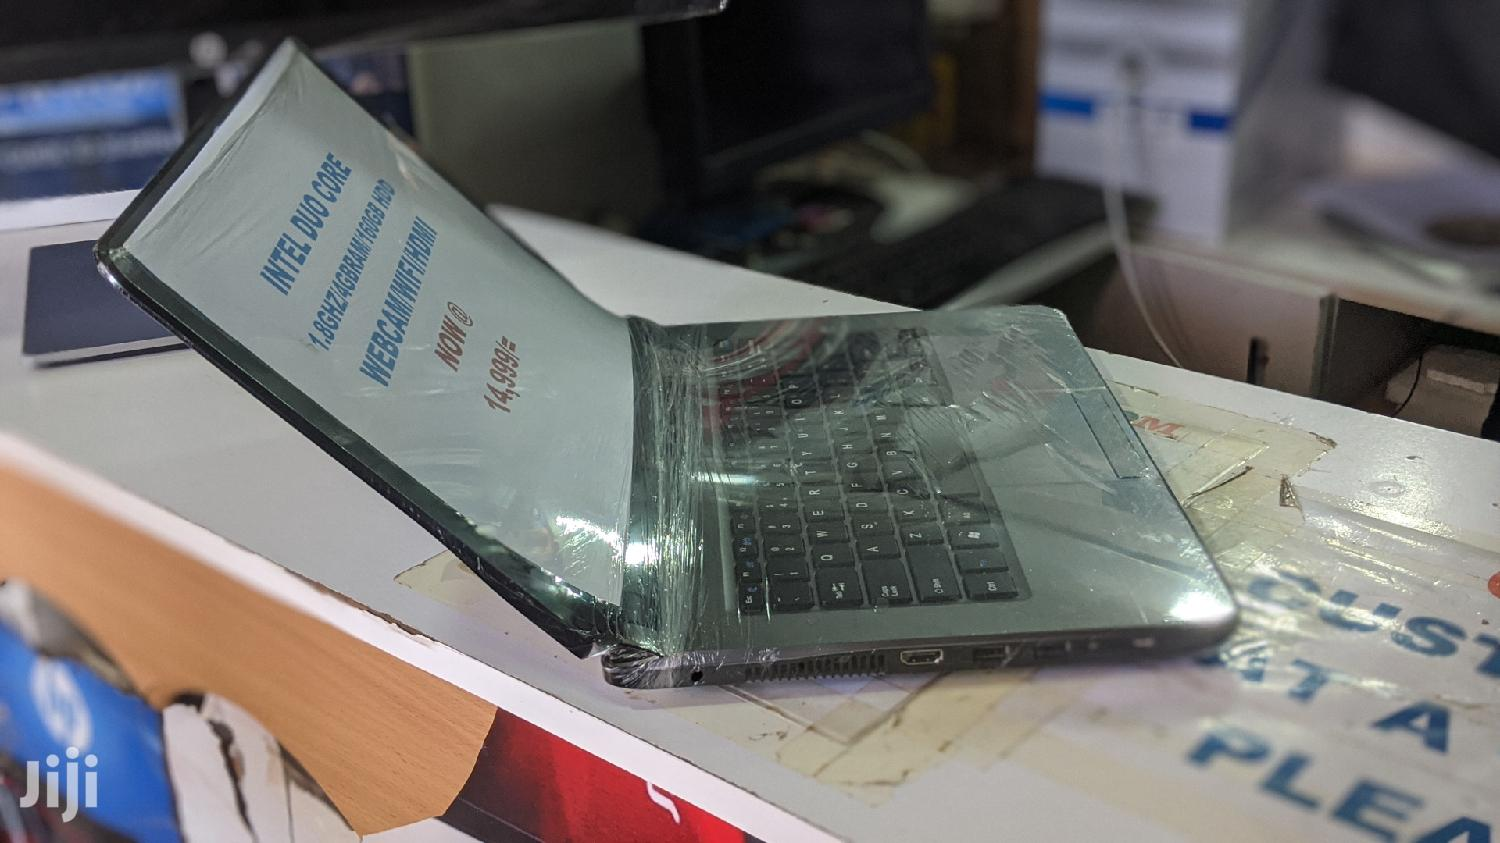 Archive: Laptop HP 4GB Intel HDD 160GB